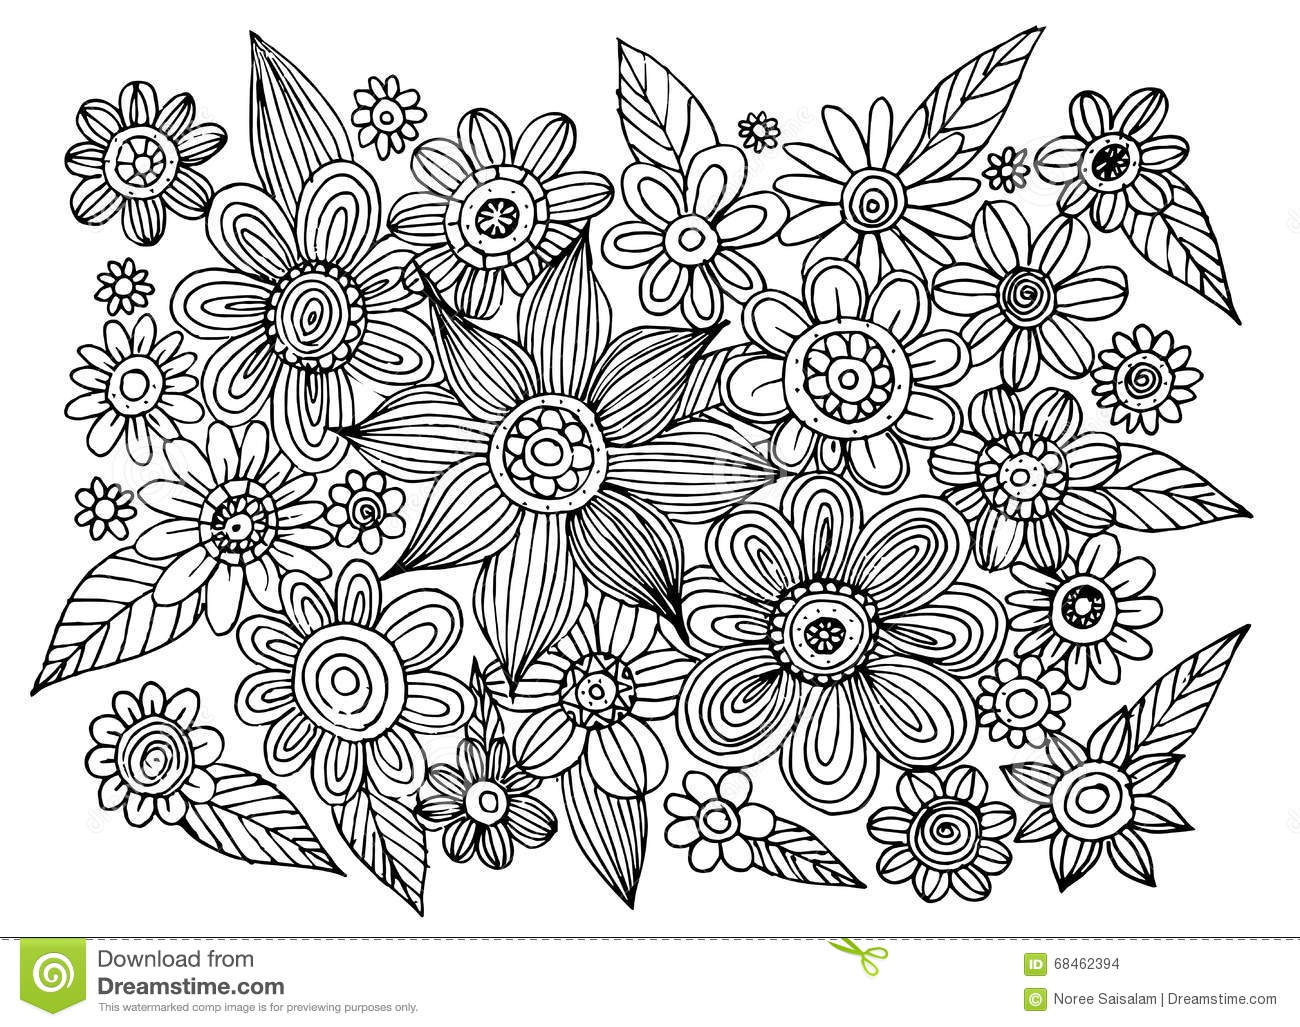 Flower Doodle Circle Vector Stock Vector - Illustration of ornament